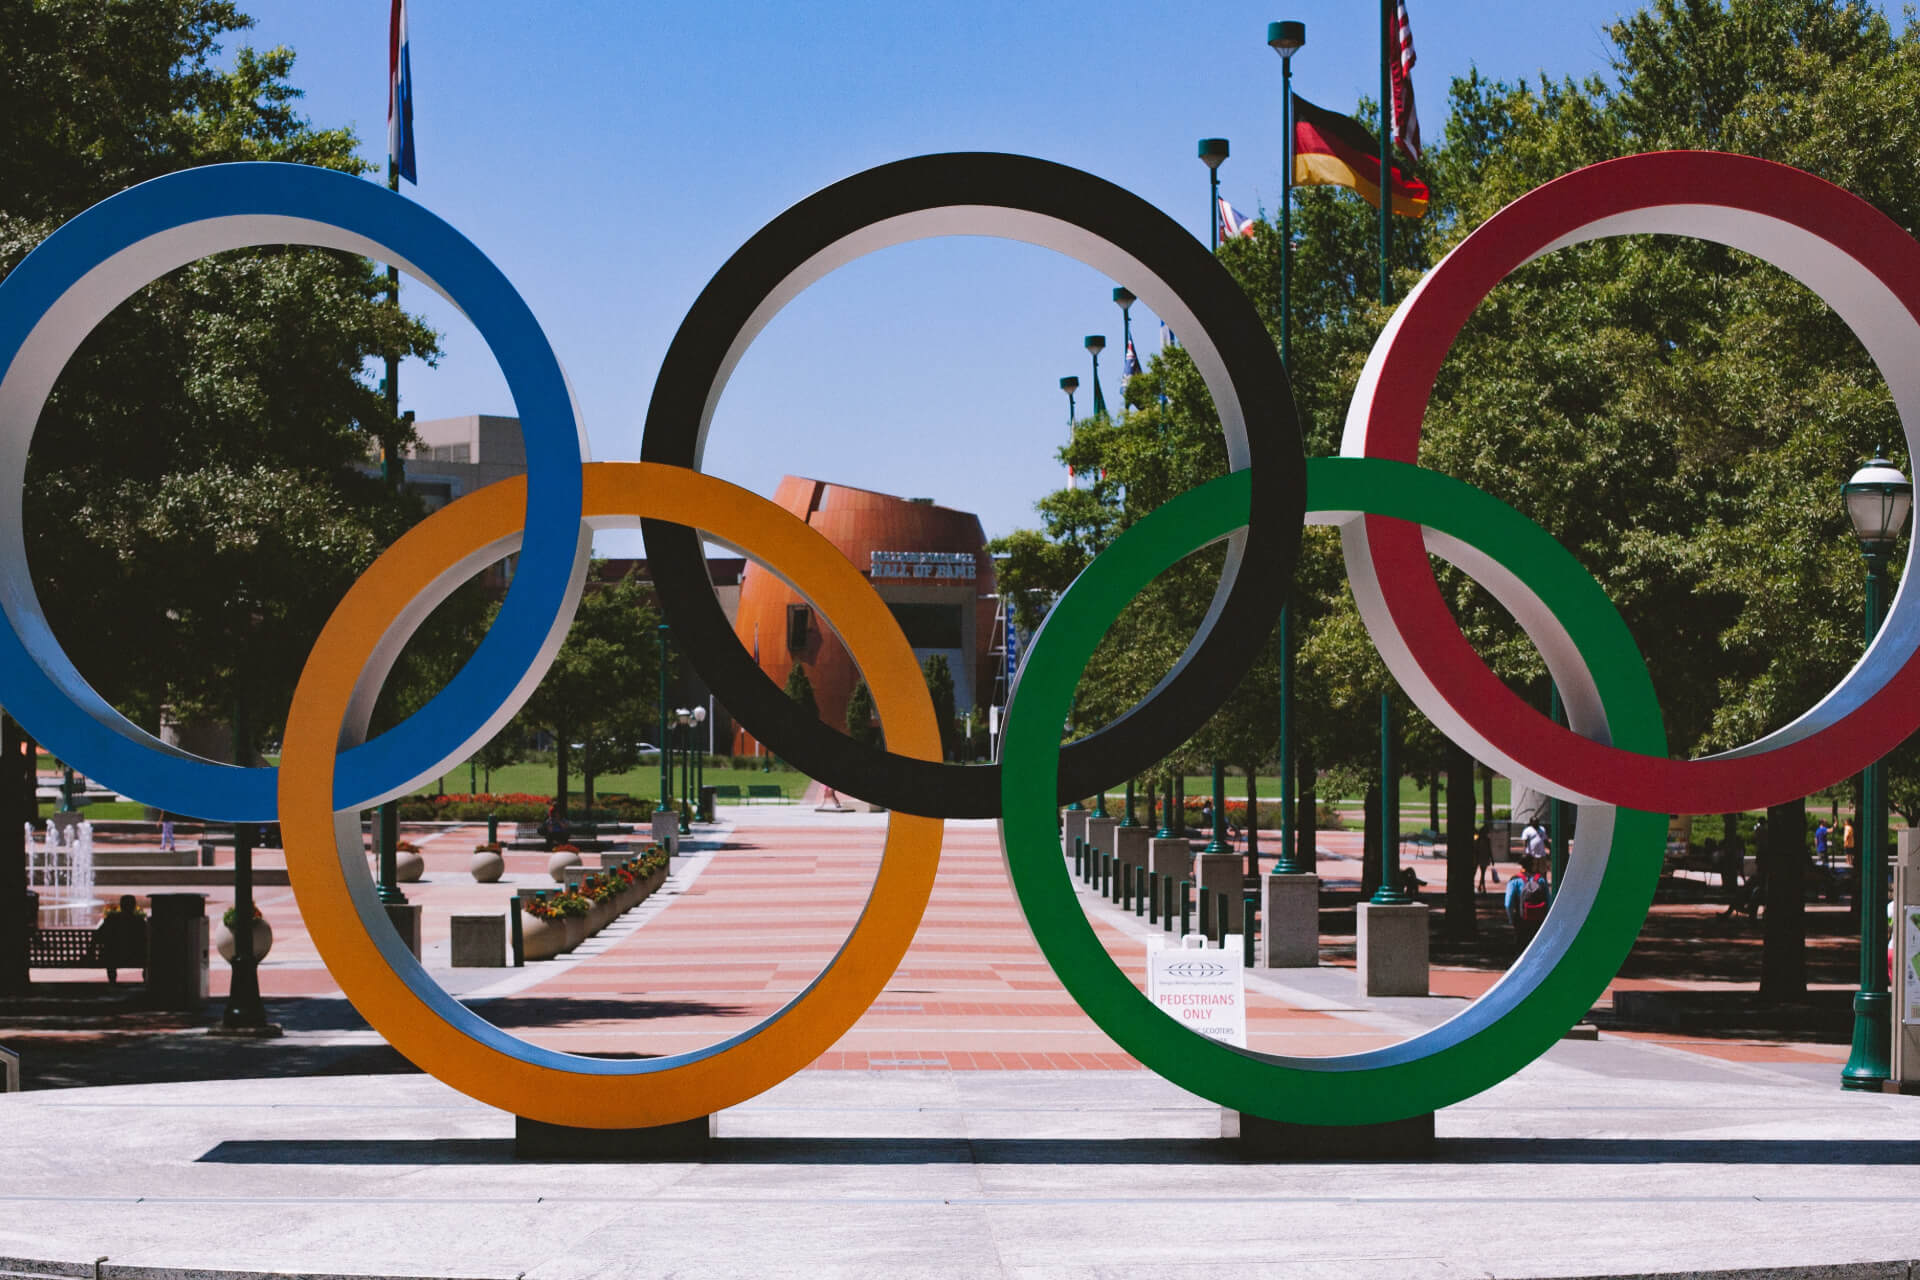 The Olympic rings in Atlanta today